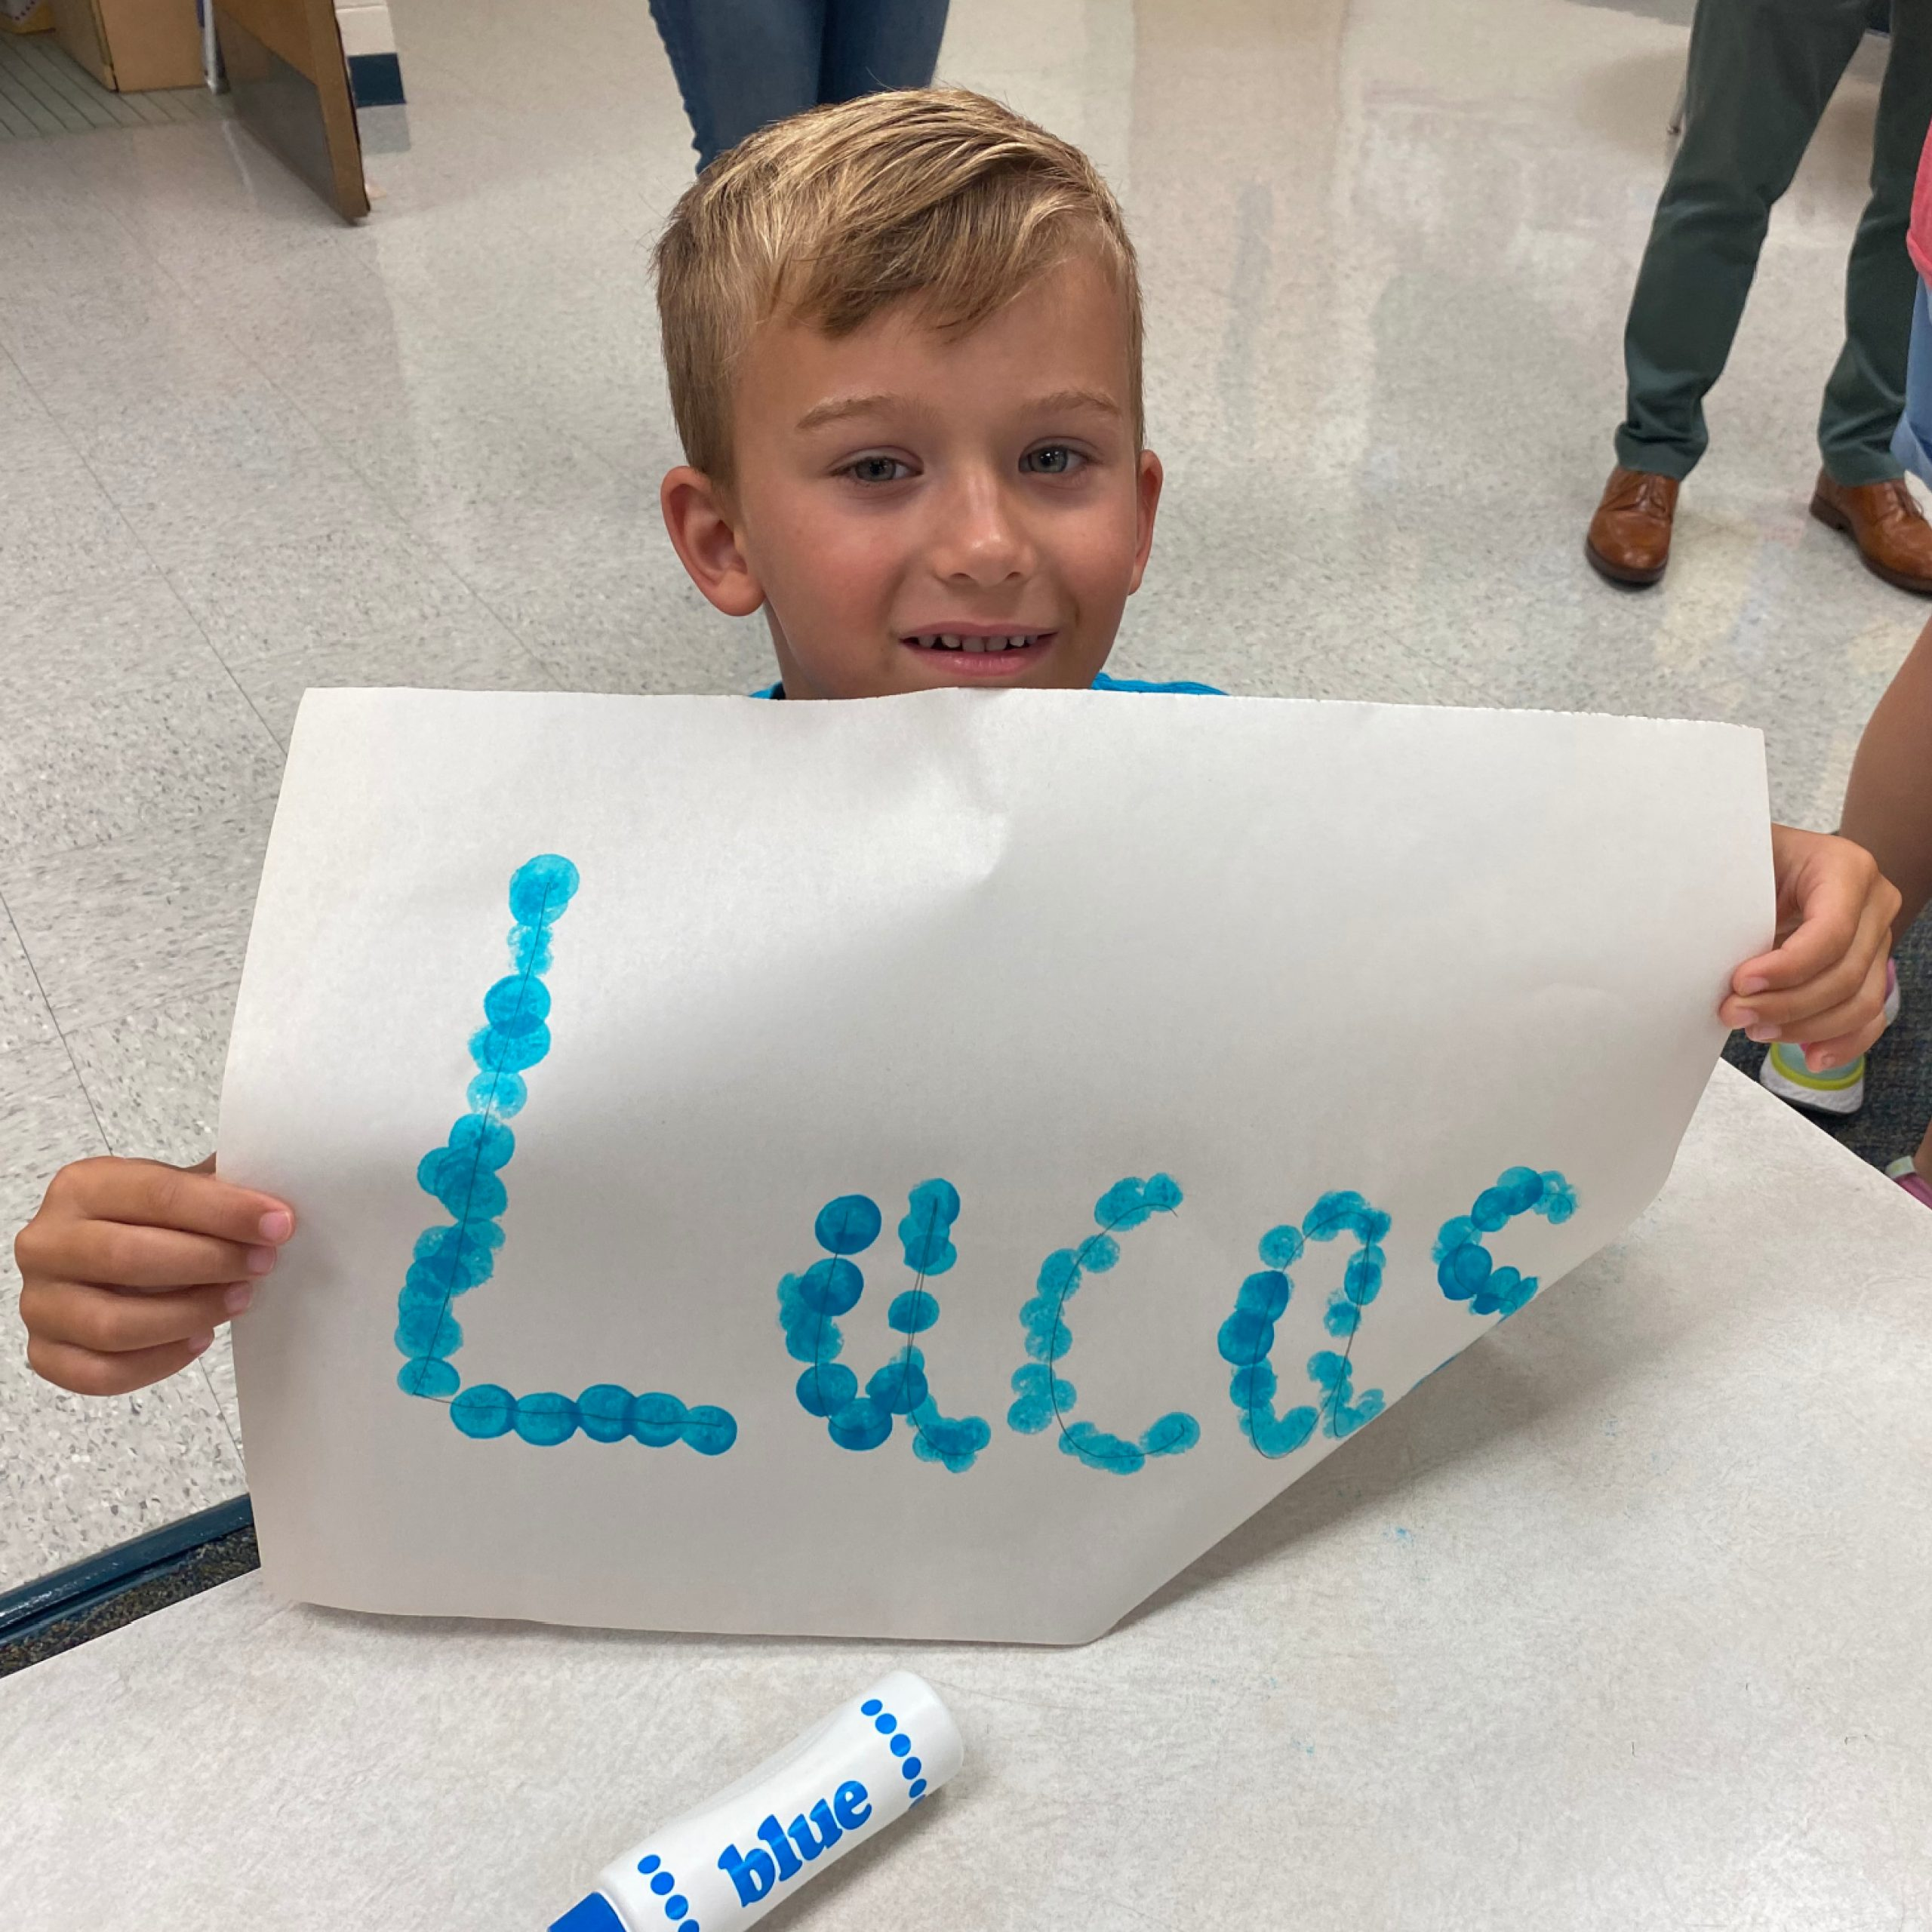 Lucas Pasquet practices his name during kinder camp at Pinebrook Elementary